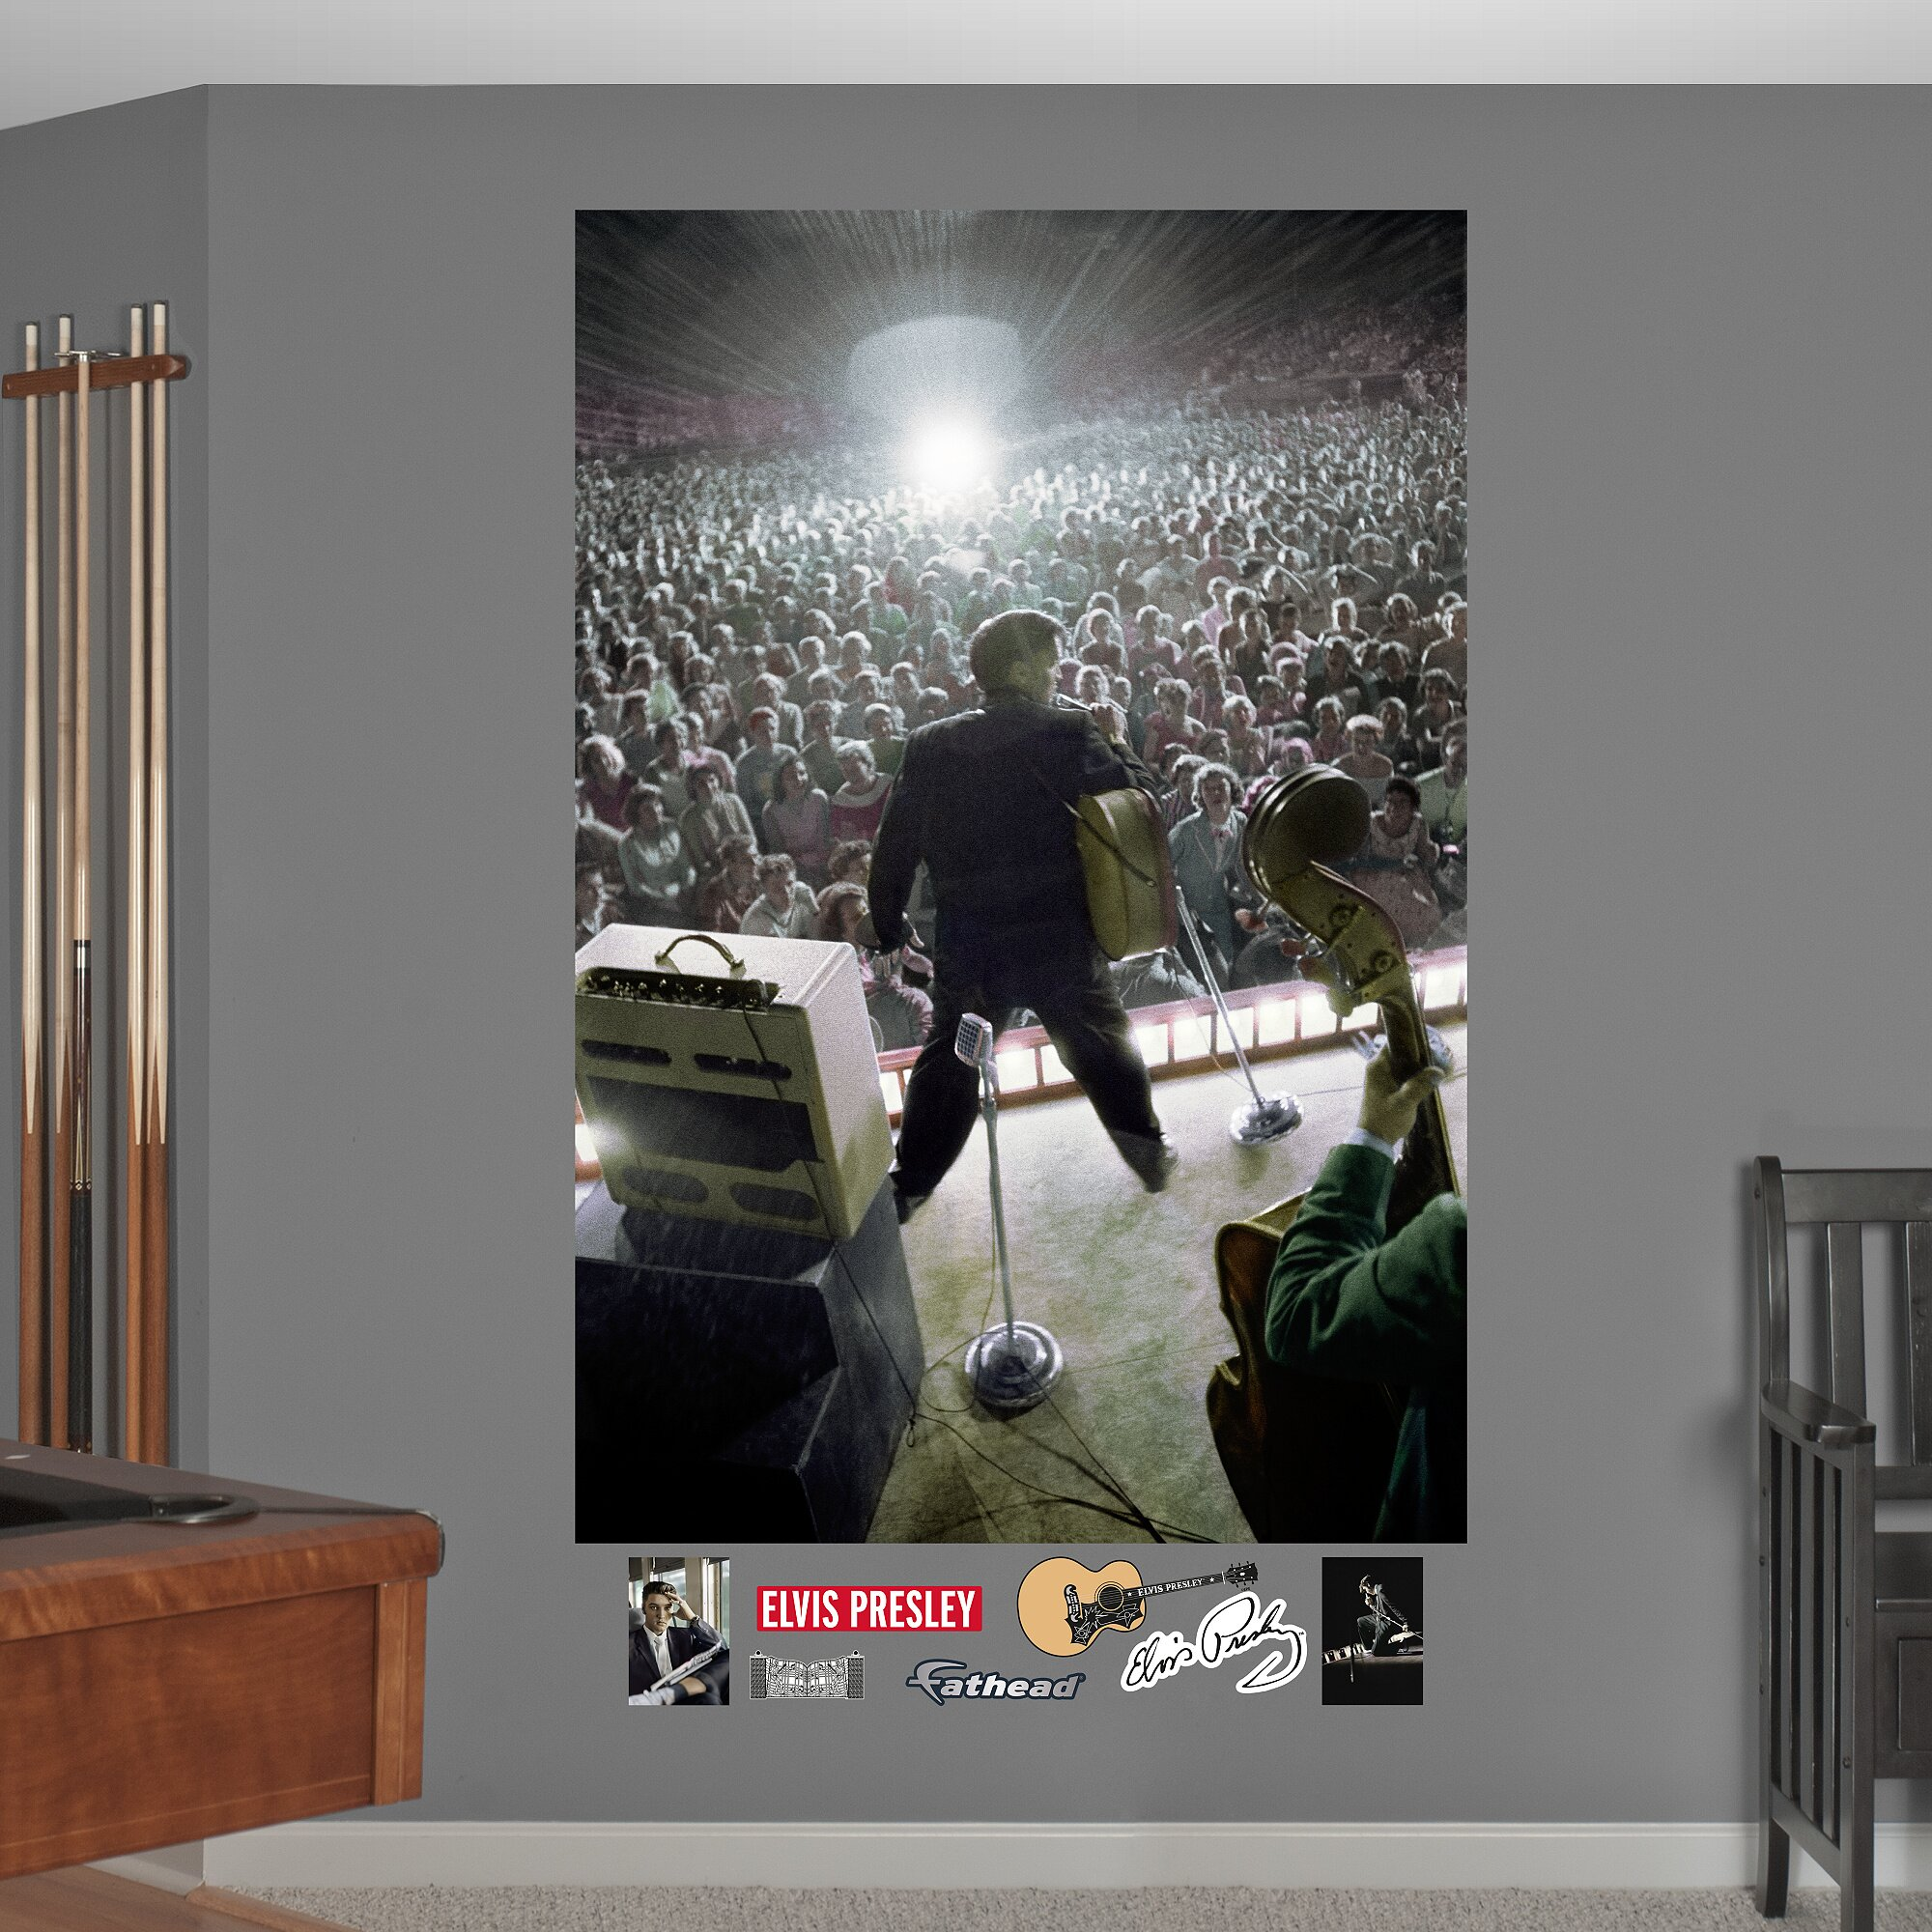 Fathead elvis presley concert wall mural wayfair for Concerts at the mural